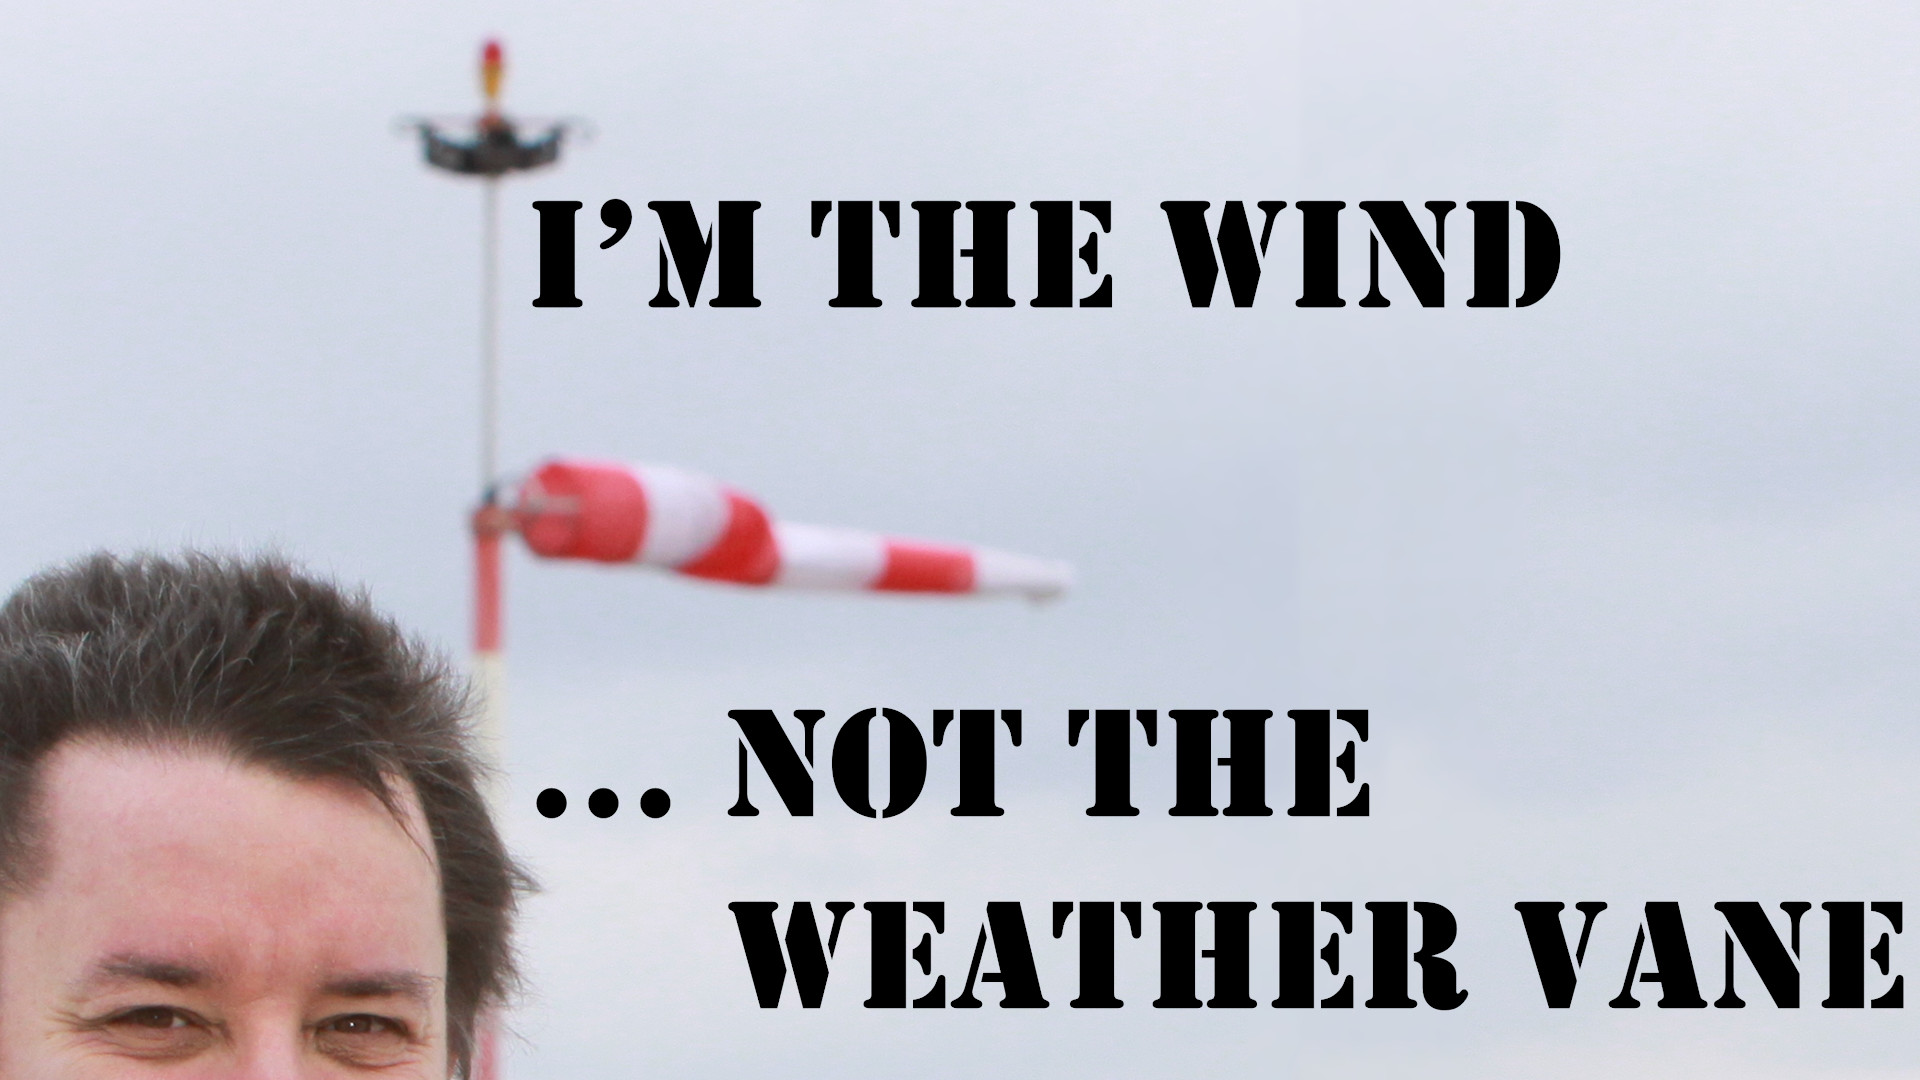 I'm the Wind ... not the Weather Vane